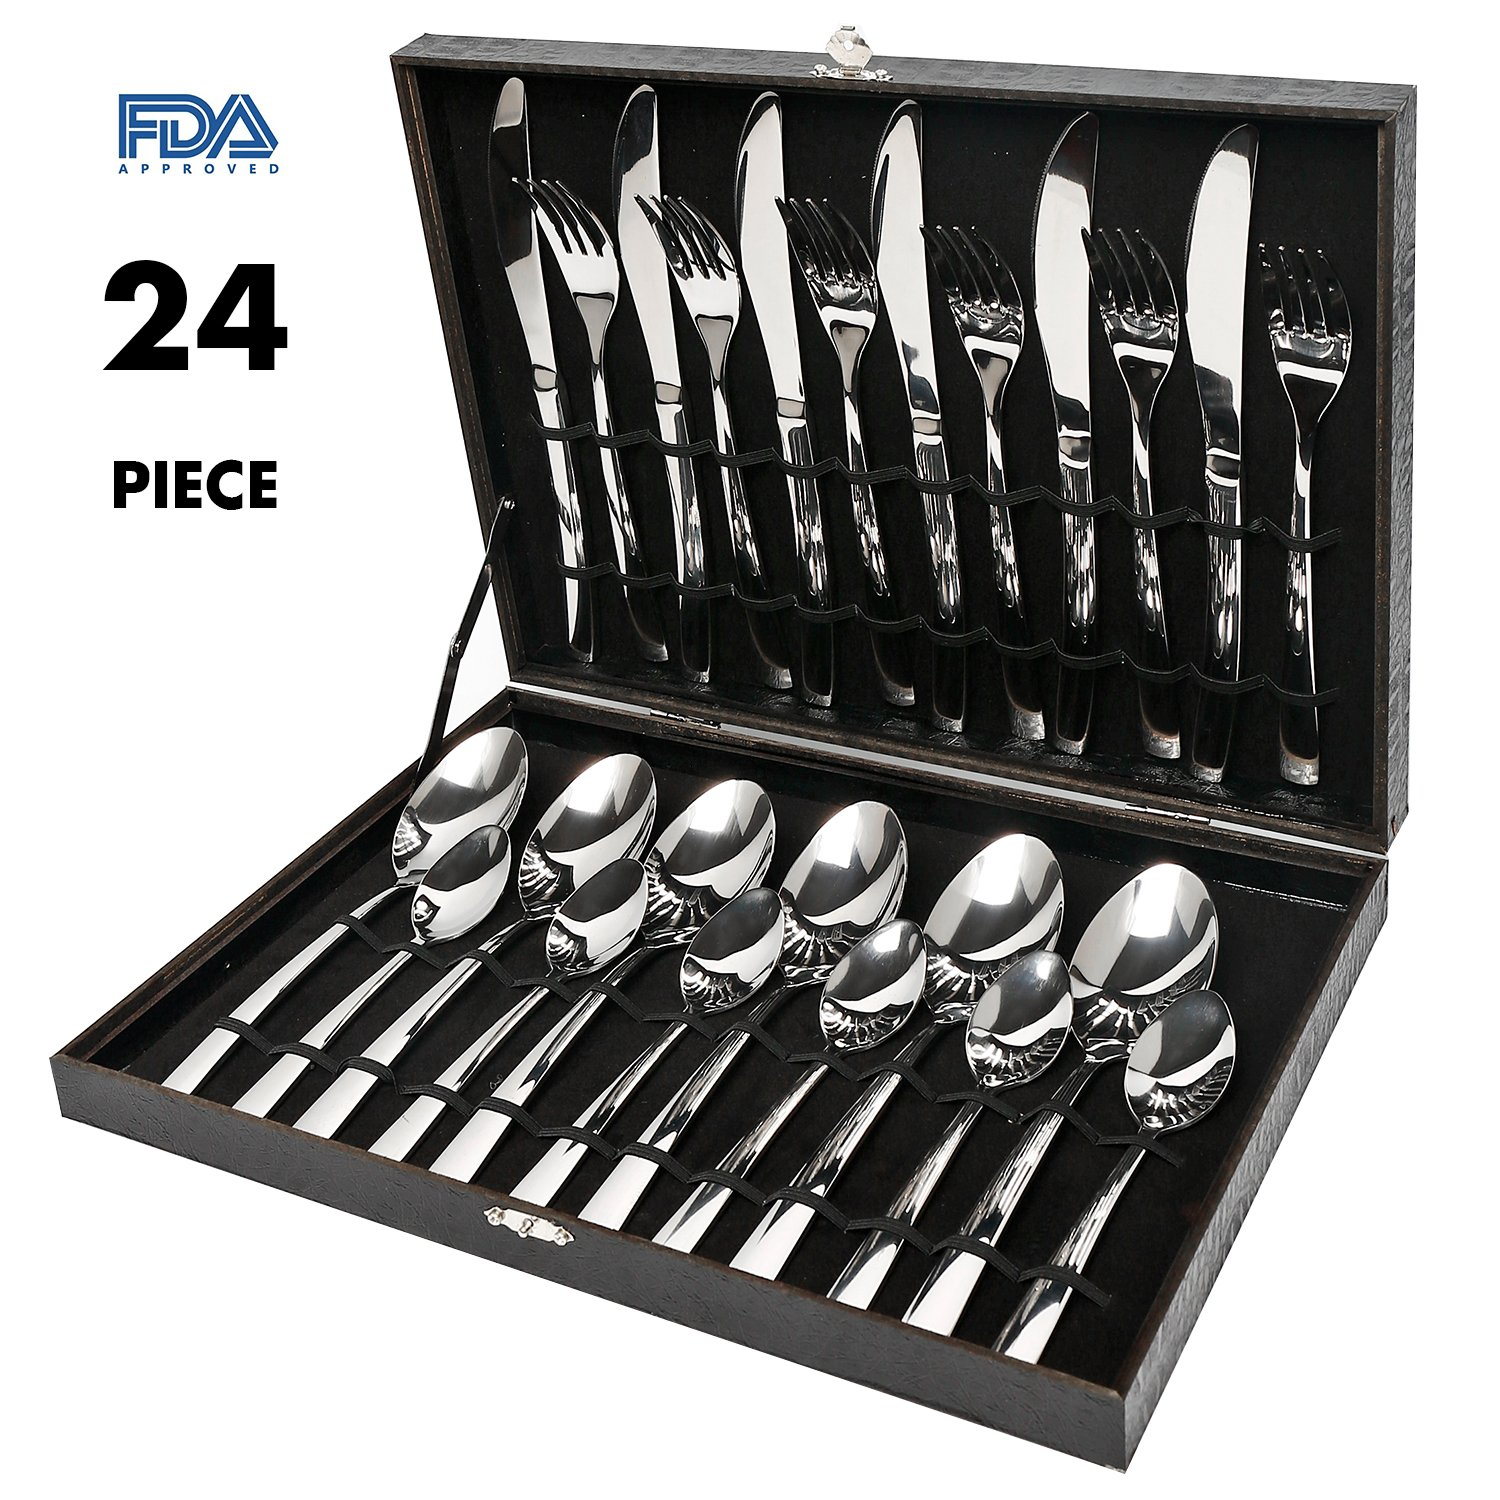 Elegant Life Silverware Set,24-Piece Stainless Steel Flatware Sets High-grade Mirror Polishing Cutlery Sets,Multipurpose Use for Kitchen,Restaurant Tableware Utensil Sets with Gift Box Service for 6